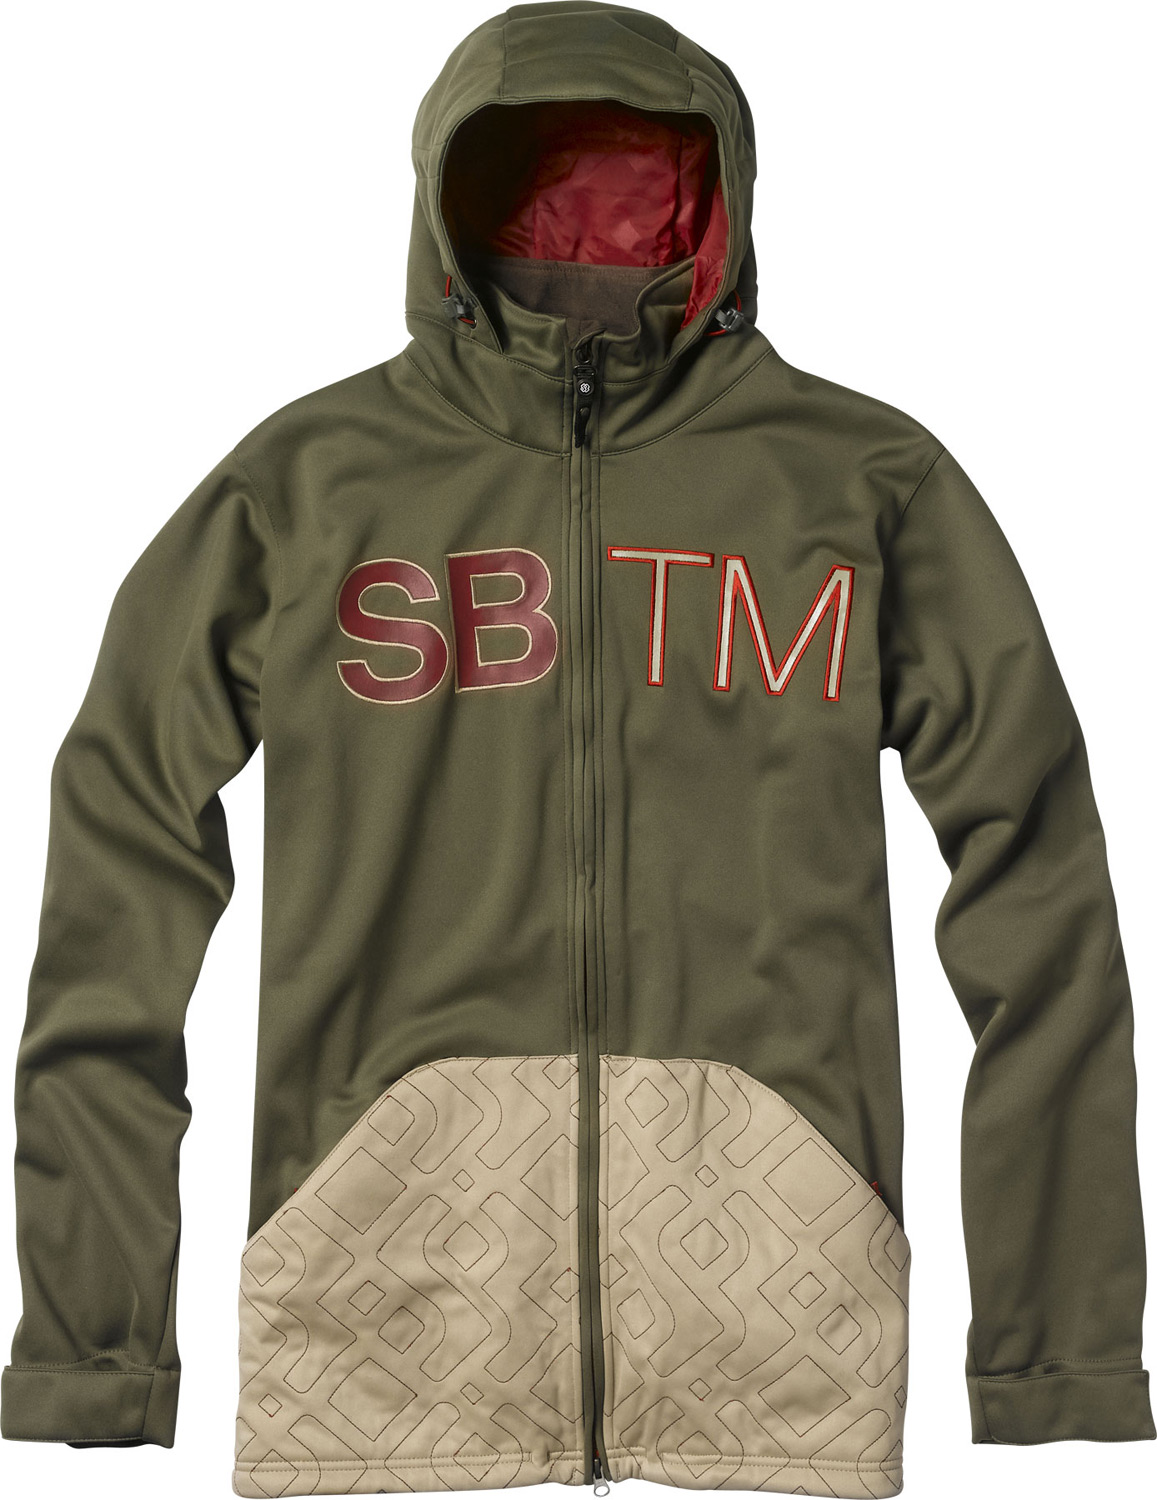 Key Features of the Special Blend Double Team Windbreaker: Bonded Fleece Jacket Wind-Resistant with DWR Coating SB Quilted Logo Kangaroo Pocket Brushed Tricot Lined Hand-Warmer Pockets Interior Stash Pocket Longer Jacket Fit - $74.95